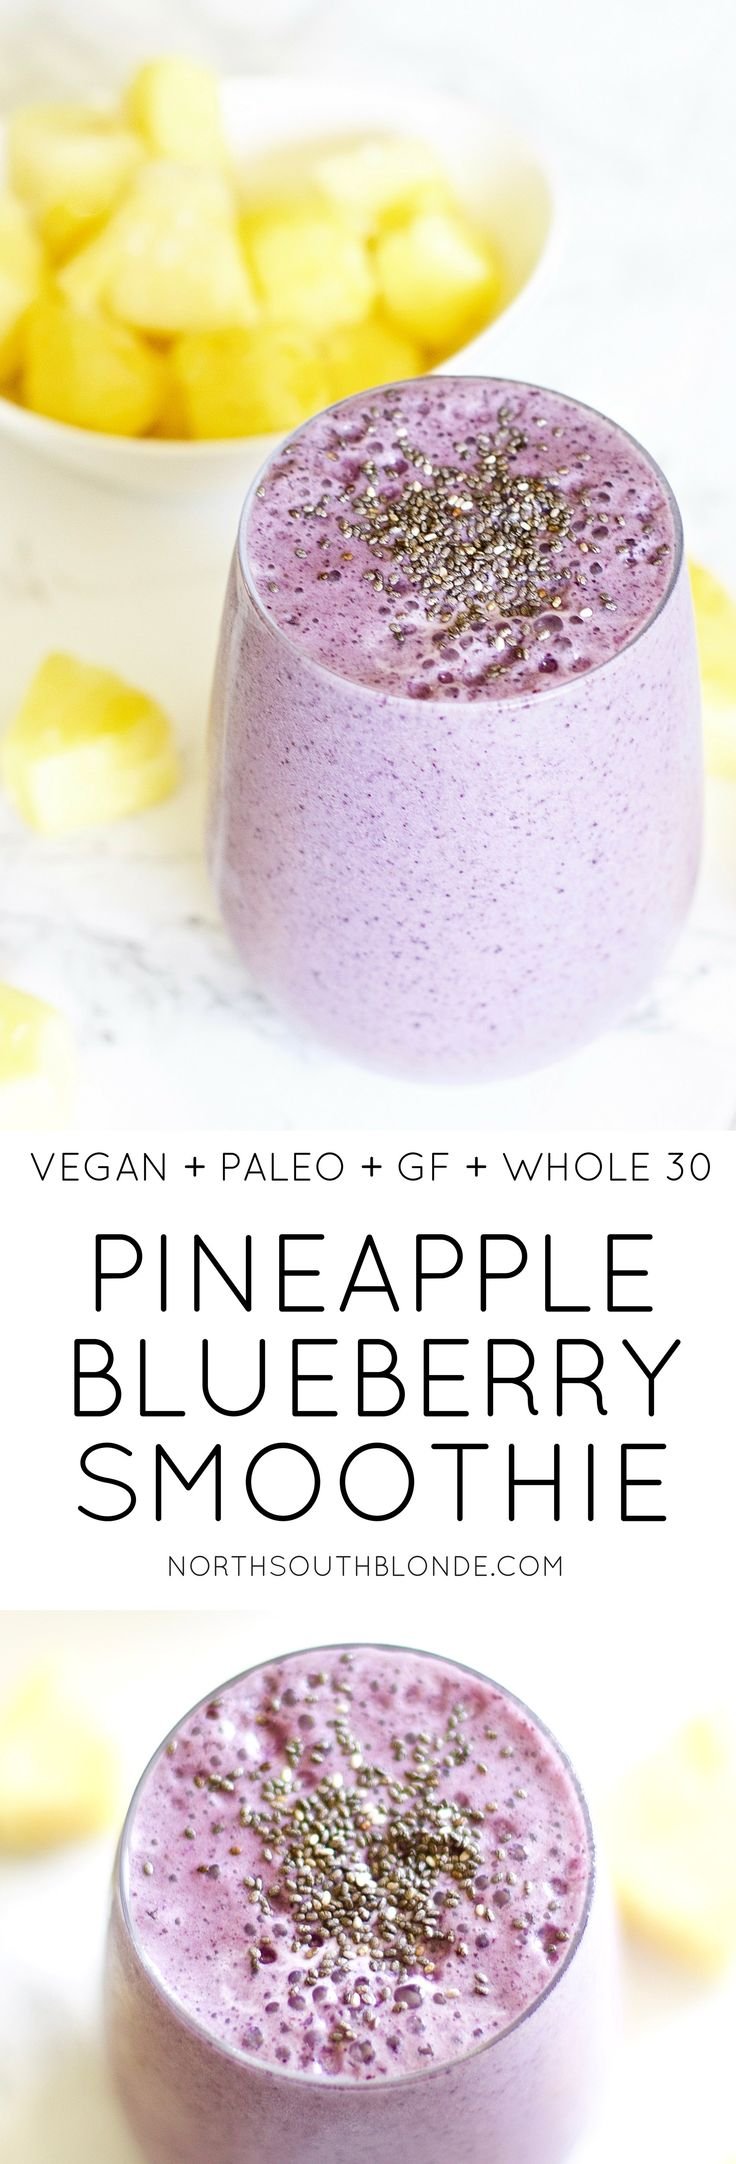 A tropical drink that can be enjoyed all year around. It's refreshing, full of antioxidants that nourishes the body for optimal health! Quick and easy, involving only a few ingredients, you too can look and feel your best this summer. Vegan | Paleo | Whole 30 | Gluten-Free | Organic | Wholesome | Summer Smoothie | Chia Seeds | Antioxidants | Weight Loss | Hair Growth | Nail Growth | Post Workout | Fitness | Baby & Toddler Food Smoothie | Refreshing Drink | Summer Drinks |